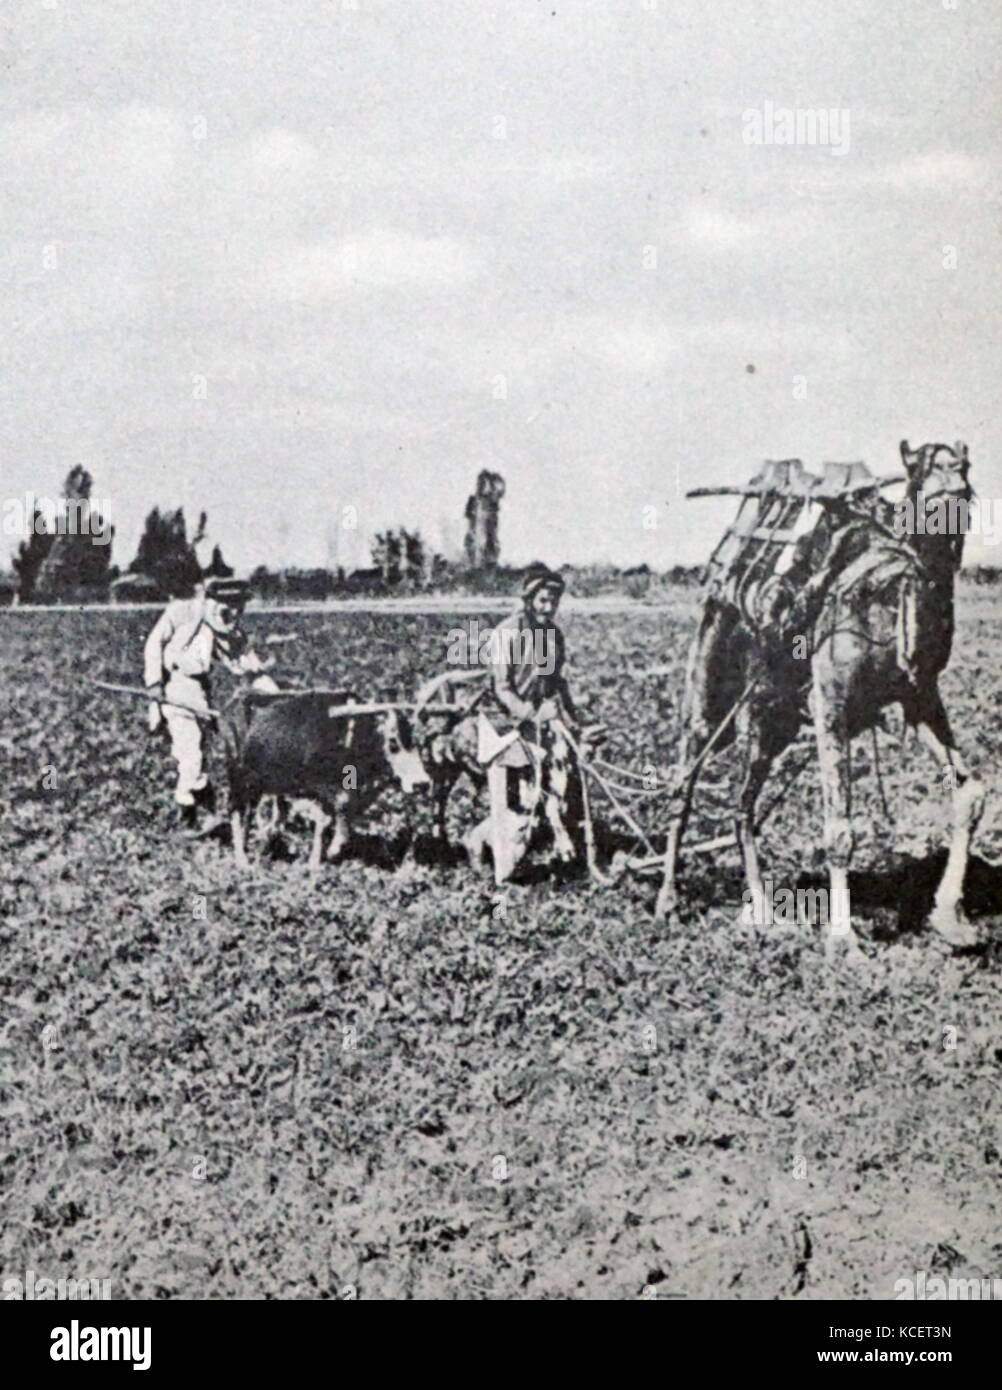 Late 19th century Jewish Farm in the Central District of Israel circa 1885 - Stock Image